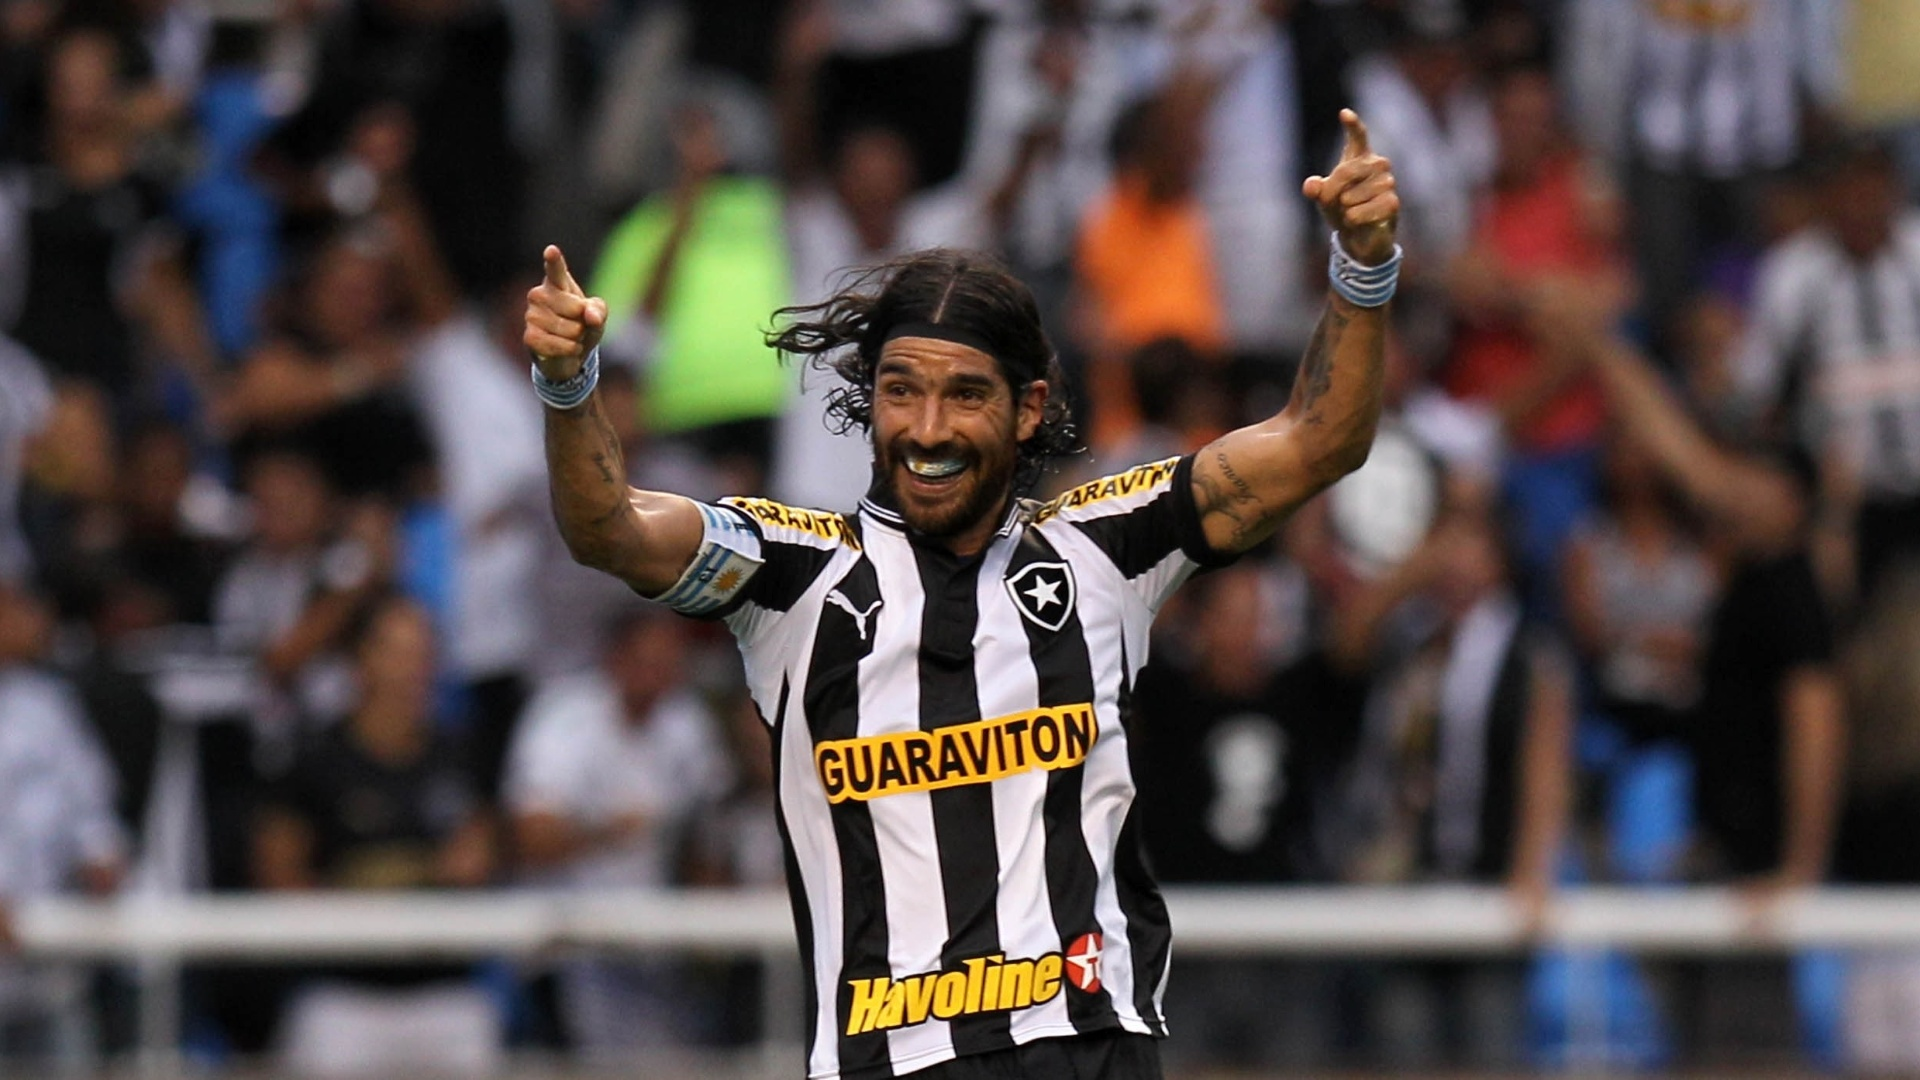 Atacante Loco Abreu comemora seu segundo gol no clssico entre Botafogo e Vasco, no estdio do Engenho